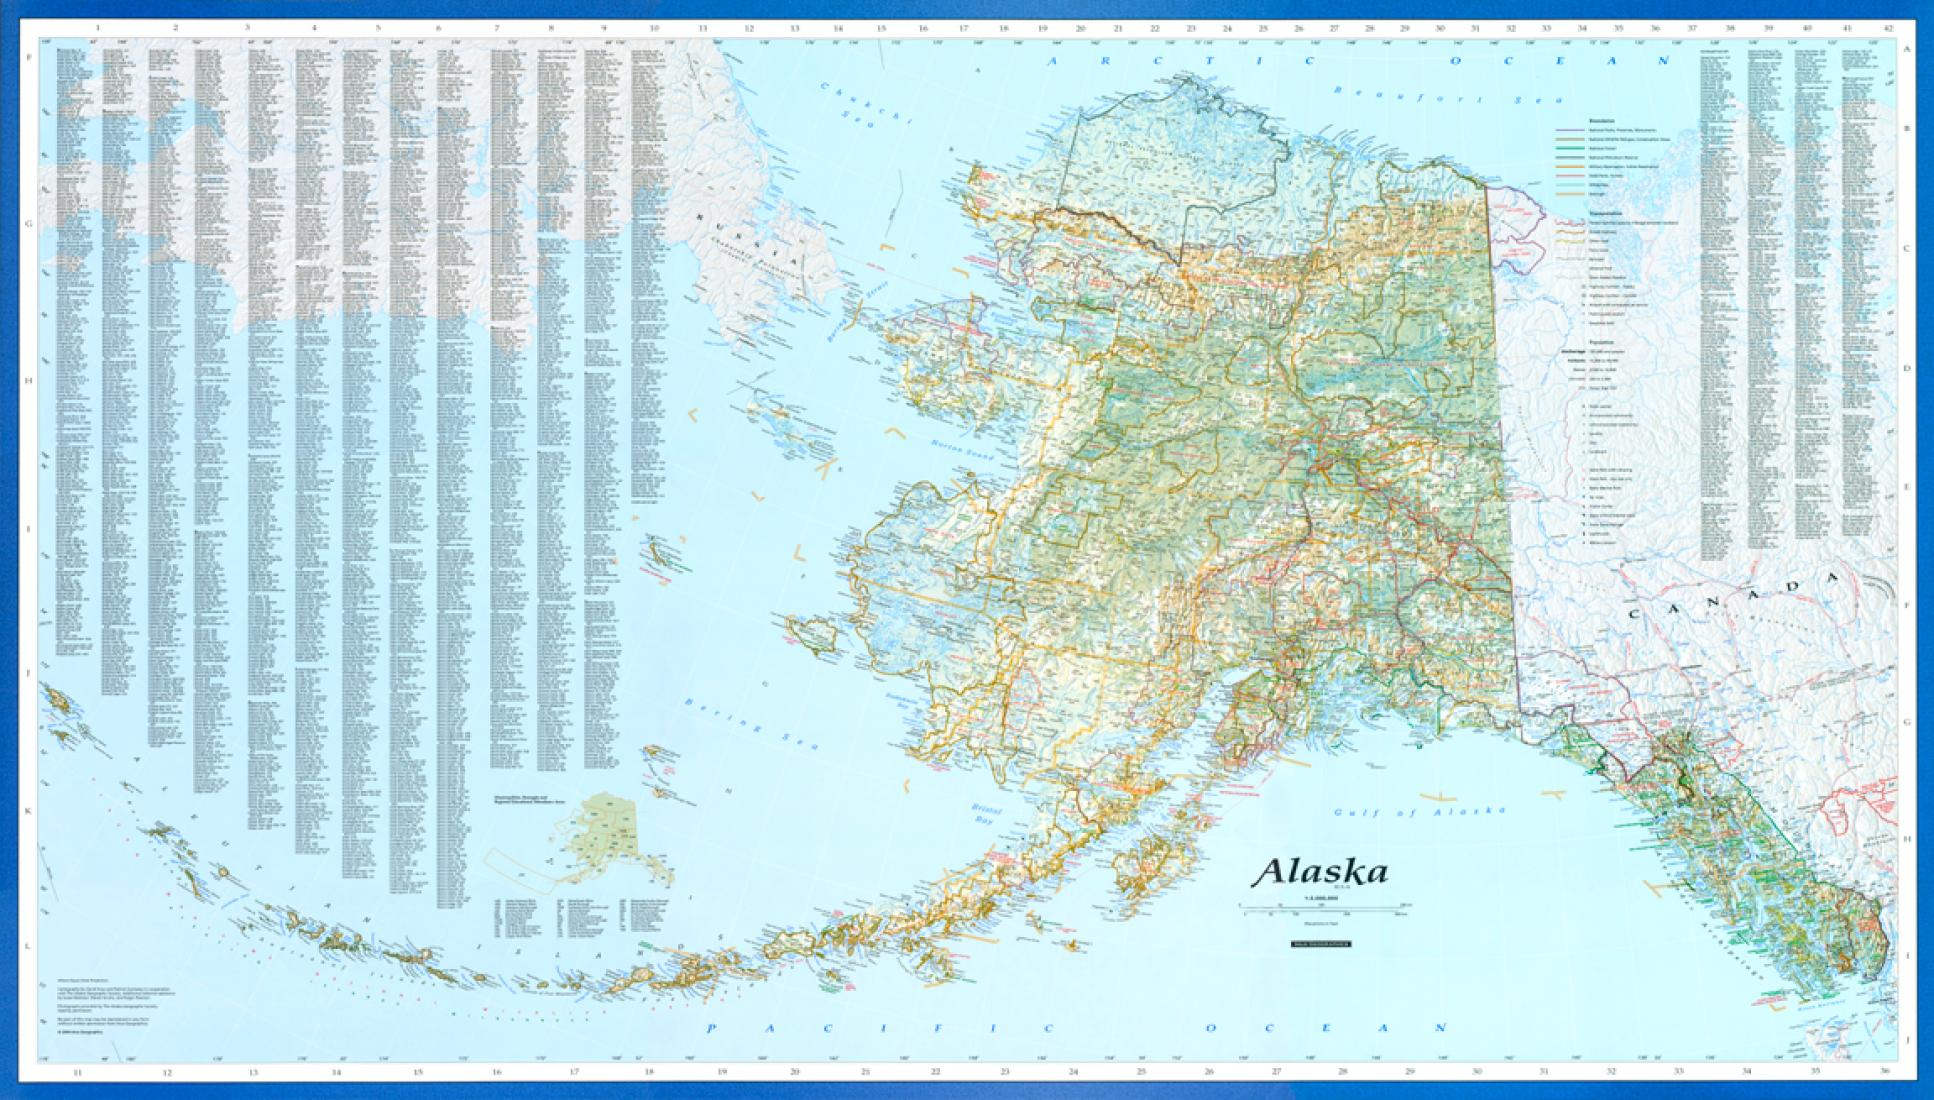 Alaska Wall Map by Imus Geographics on outline map of alaska, topographical map of alaska, rivers of alaska, us map alaska, climate map of alaska, map of southern alaska, the map of alaska, road map of alaska, atlas map of alaska, political map of alaska, denali alaska, large map alaska, satellite map of alaska, map of nome alaska, full map of alaska, detailed map alaska, printable maps alaska, physical maps of vietnam, world map of alaska, elevation map of alaska,